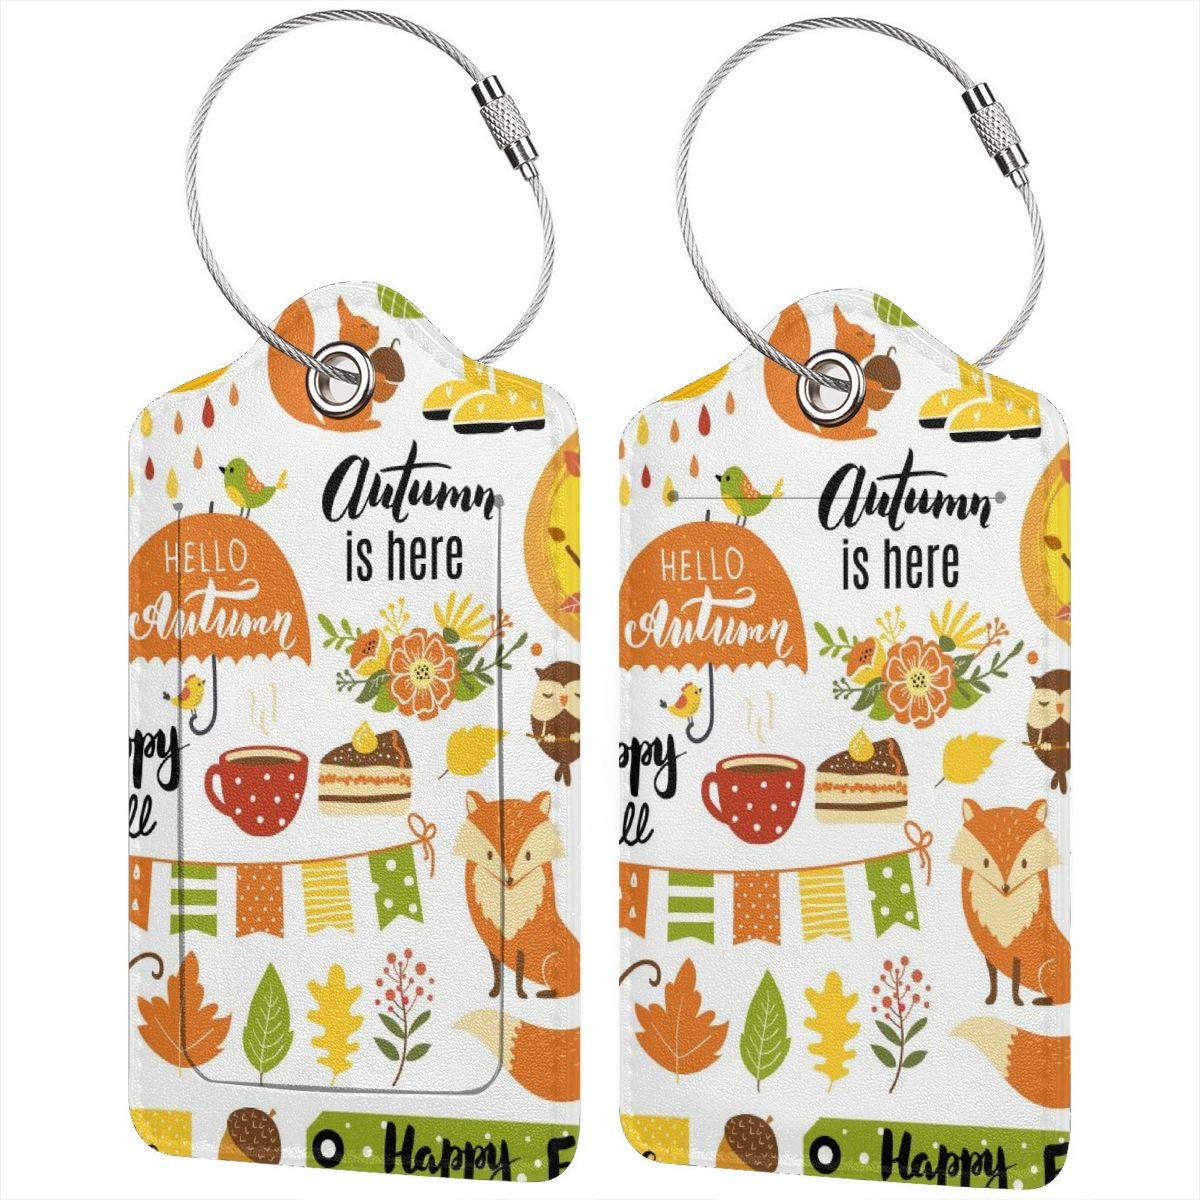 Lucaeat Autumn Forest Animals Luggage Tag PU Leather Bag Tag Travel Suitcases ID